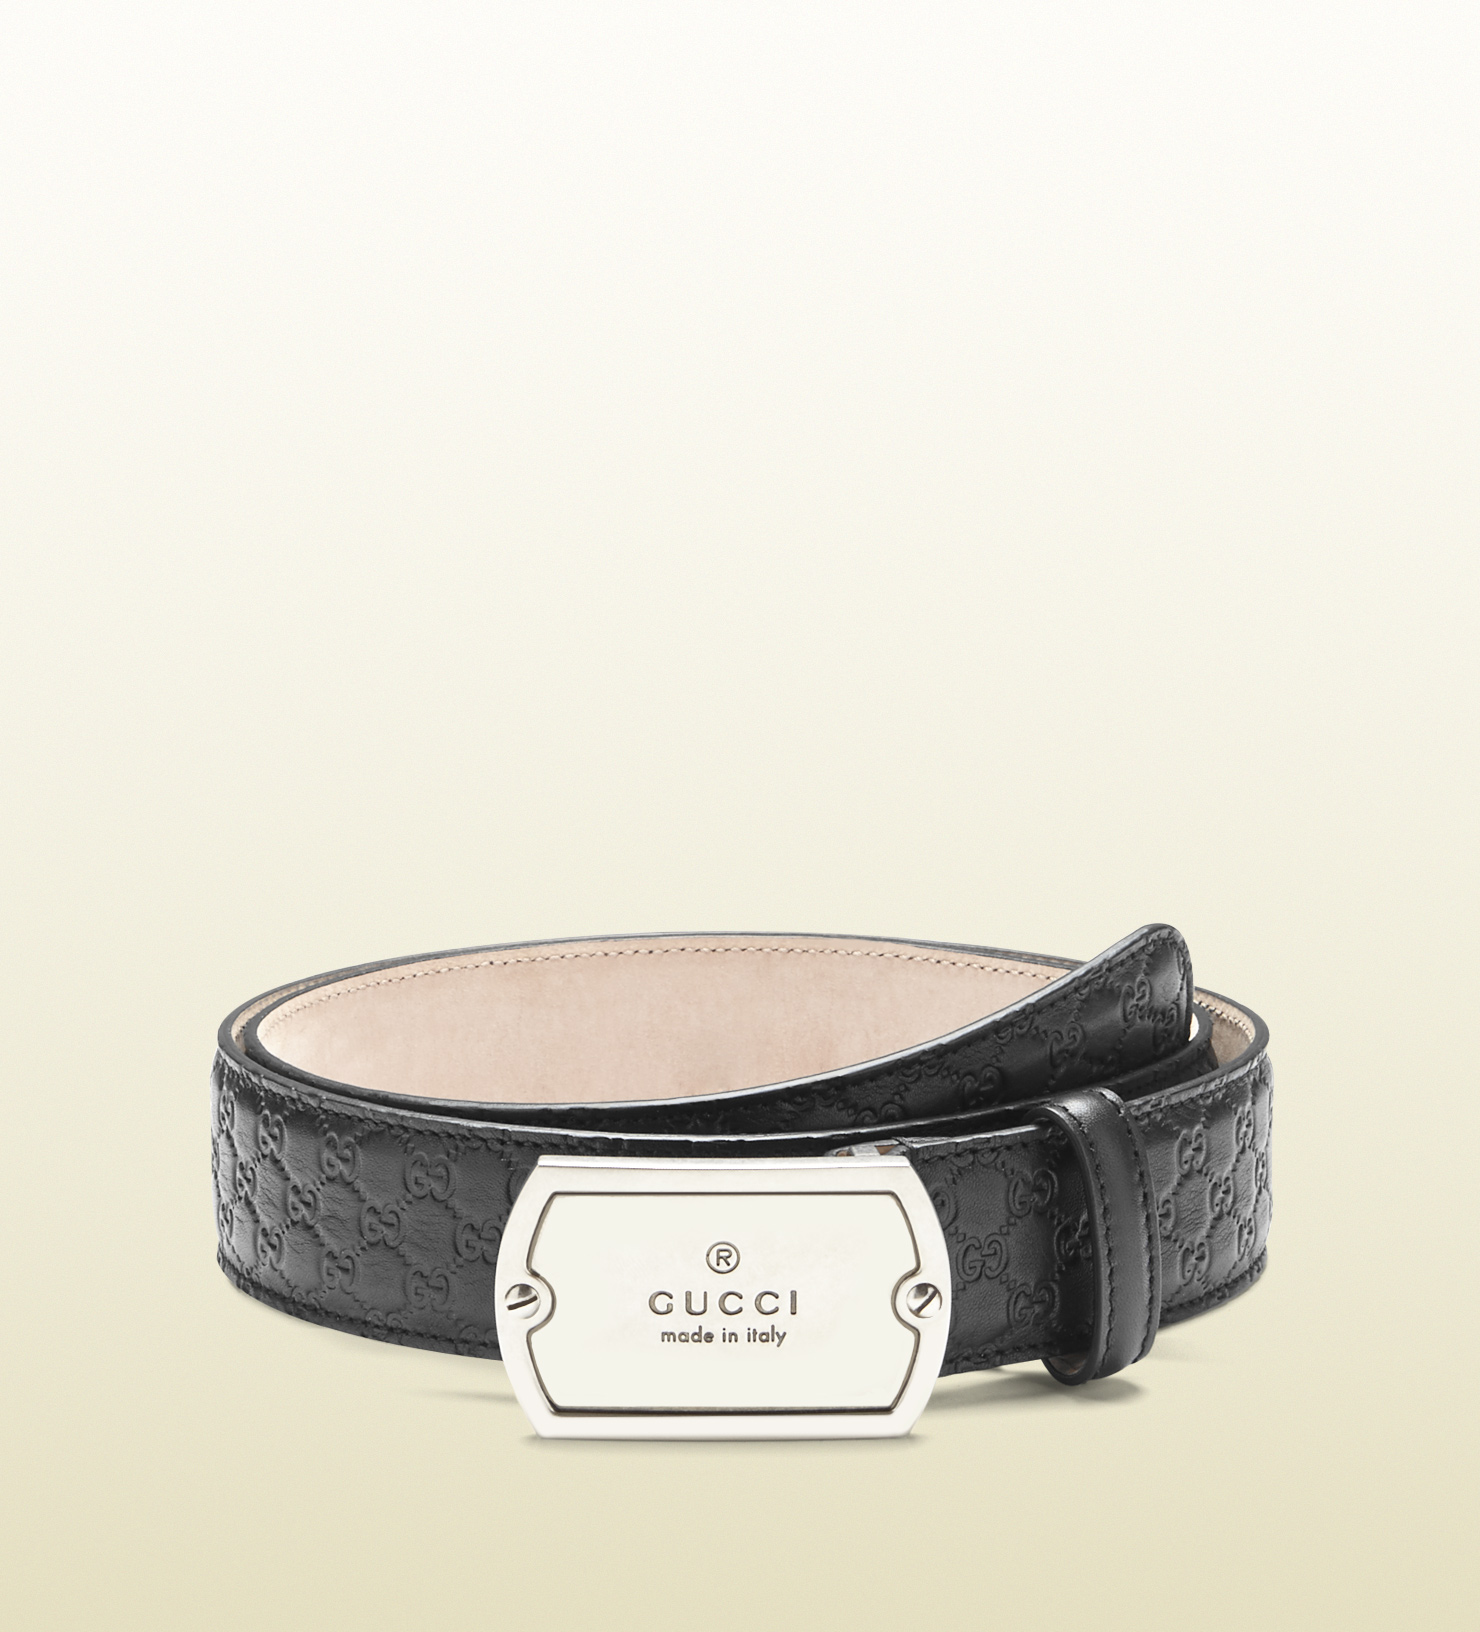 e6886d0e1c0 Lyst - Gucci Microssima Belt With Dog Tag Buckle in Black for Men